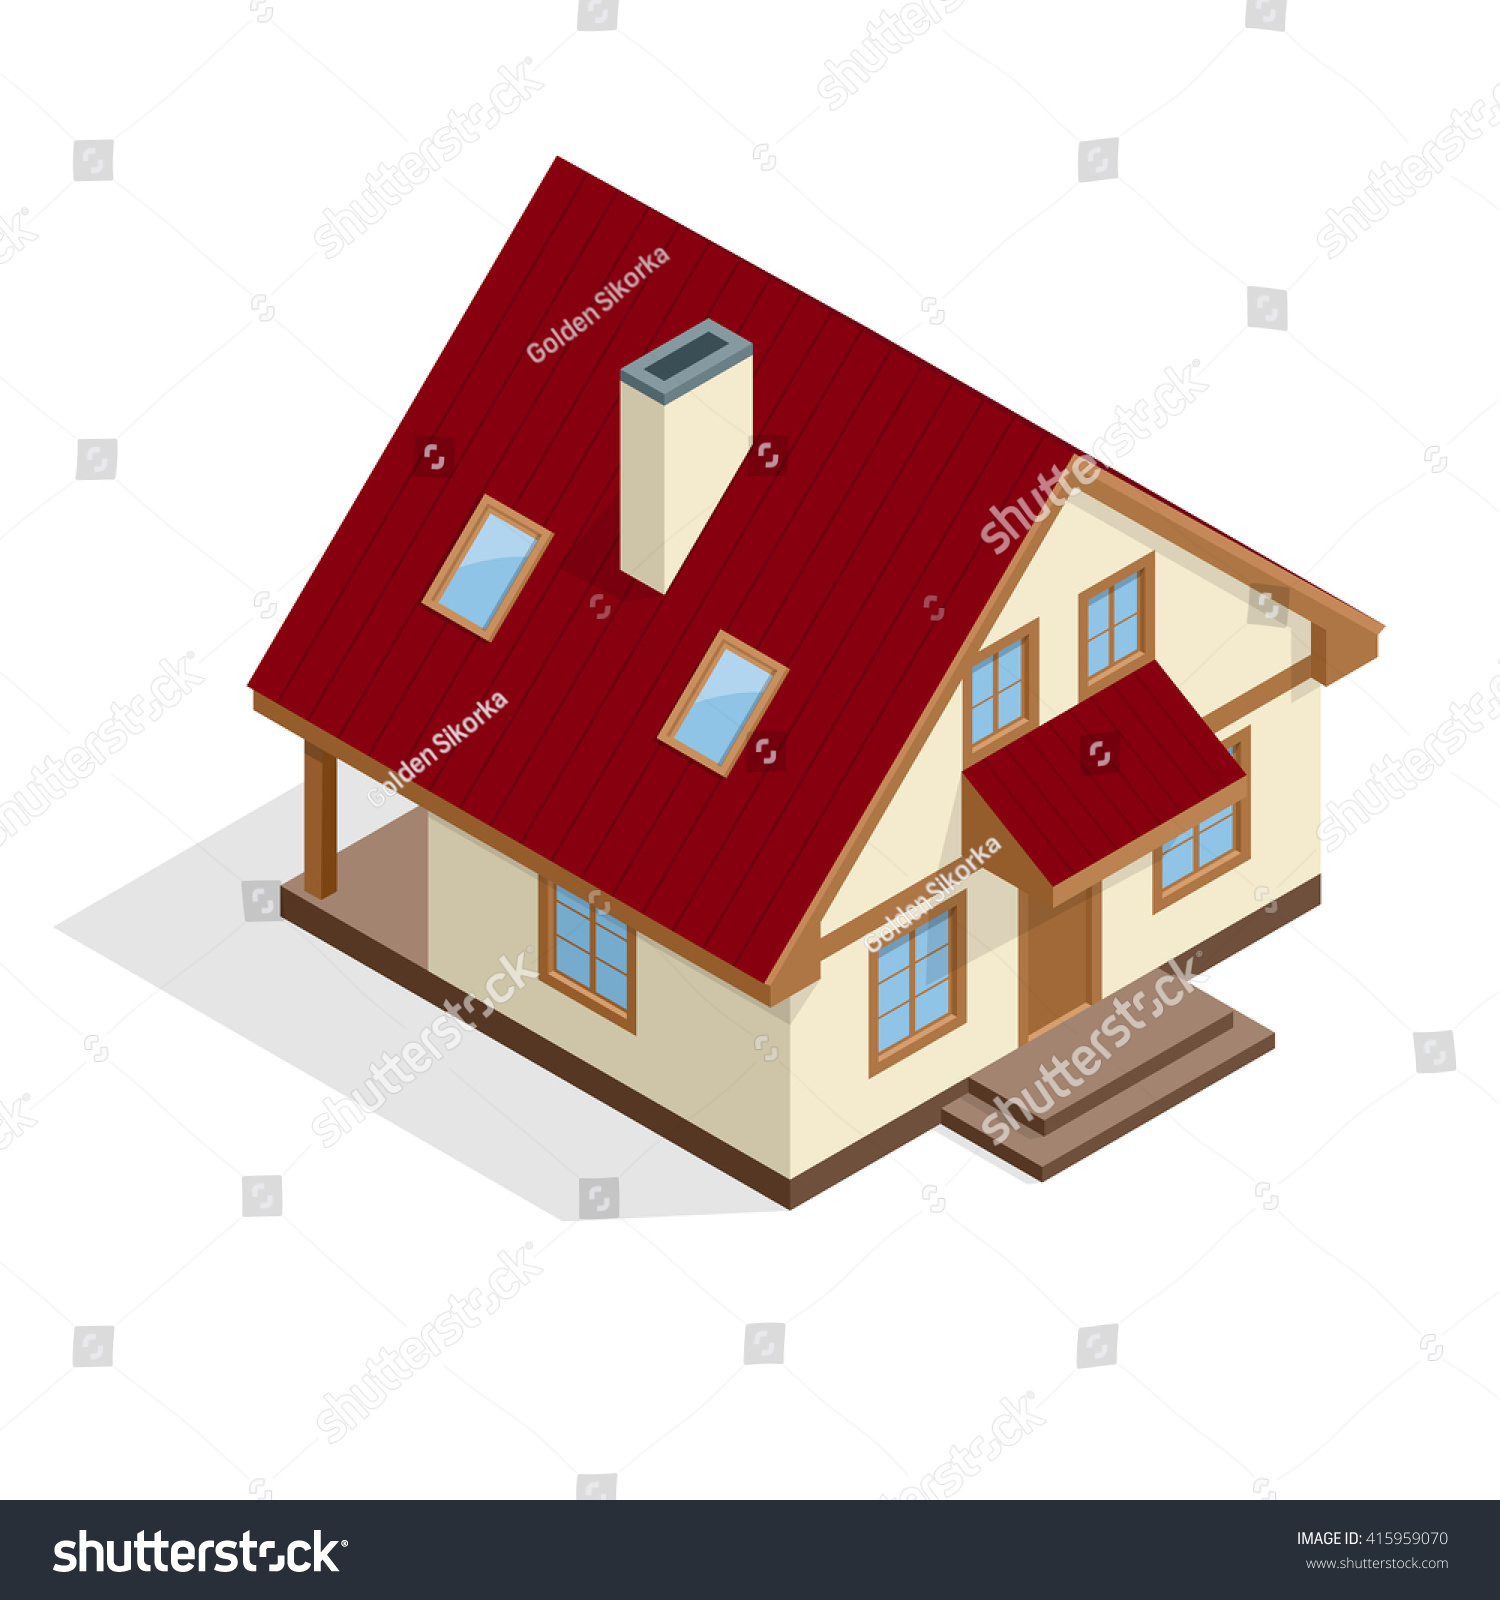 Isometric 3d house icon townhouse village stock vector for Realistic house design games